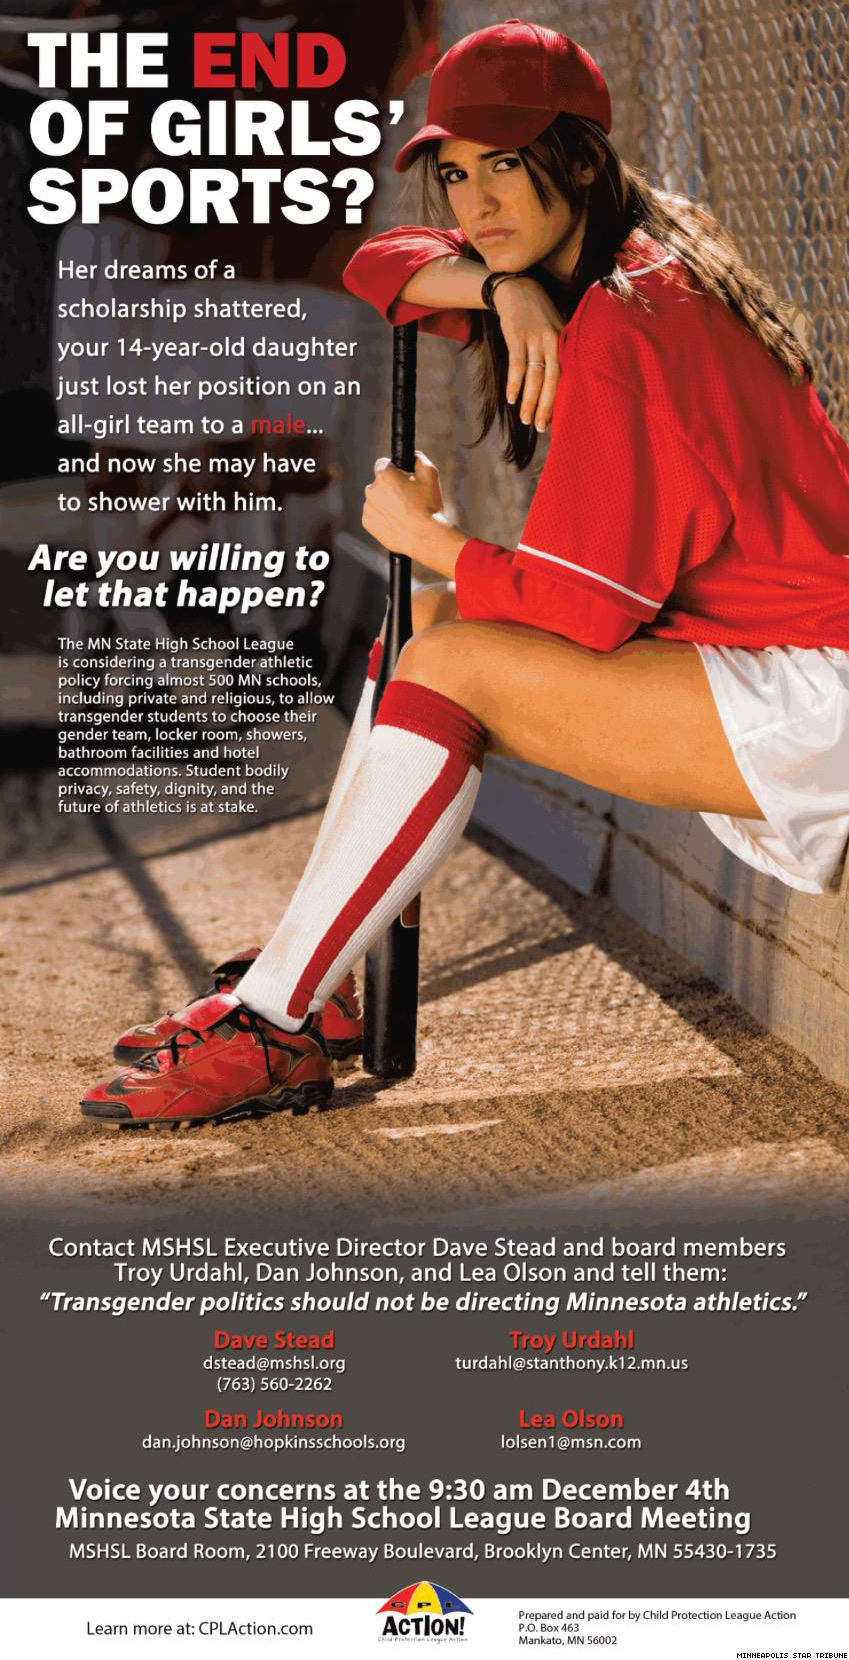 Second Transphobic Ad Hits Press as Minn. Debates Student Athlete Policy